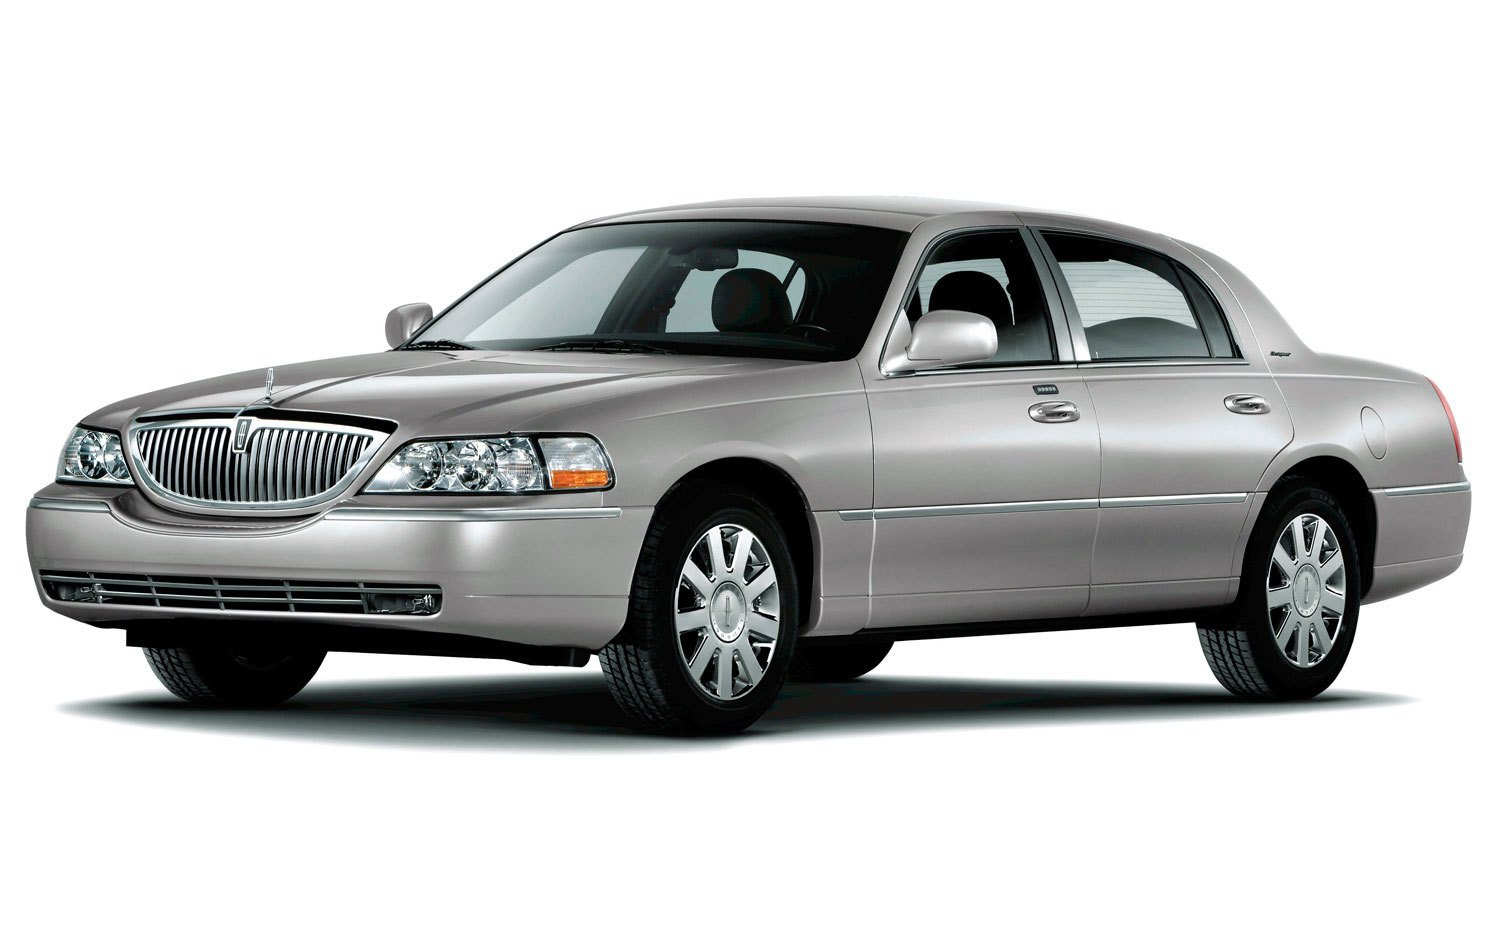 Latest Last Call For The Lincoln Town Car Automobile Magazine Free Download